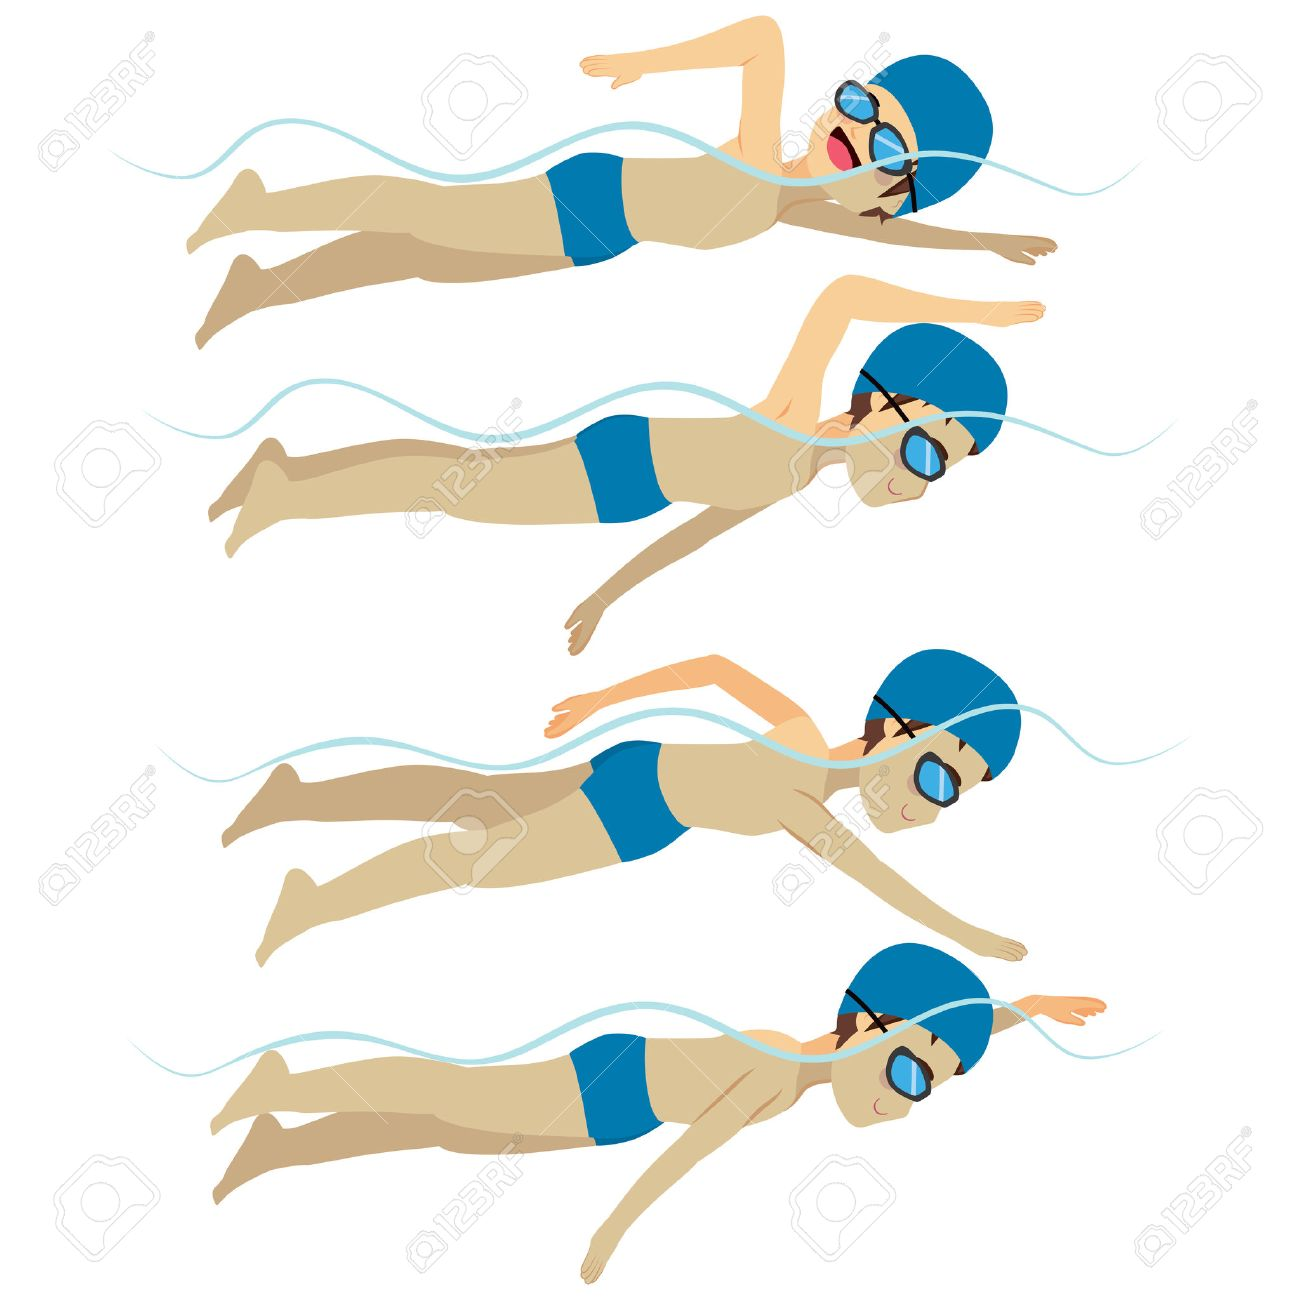 Set with athlete man swimming free style stroke on various different poses training - 55482504